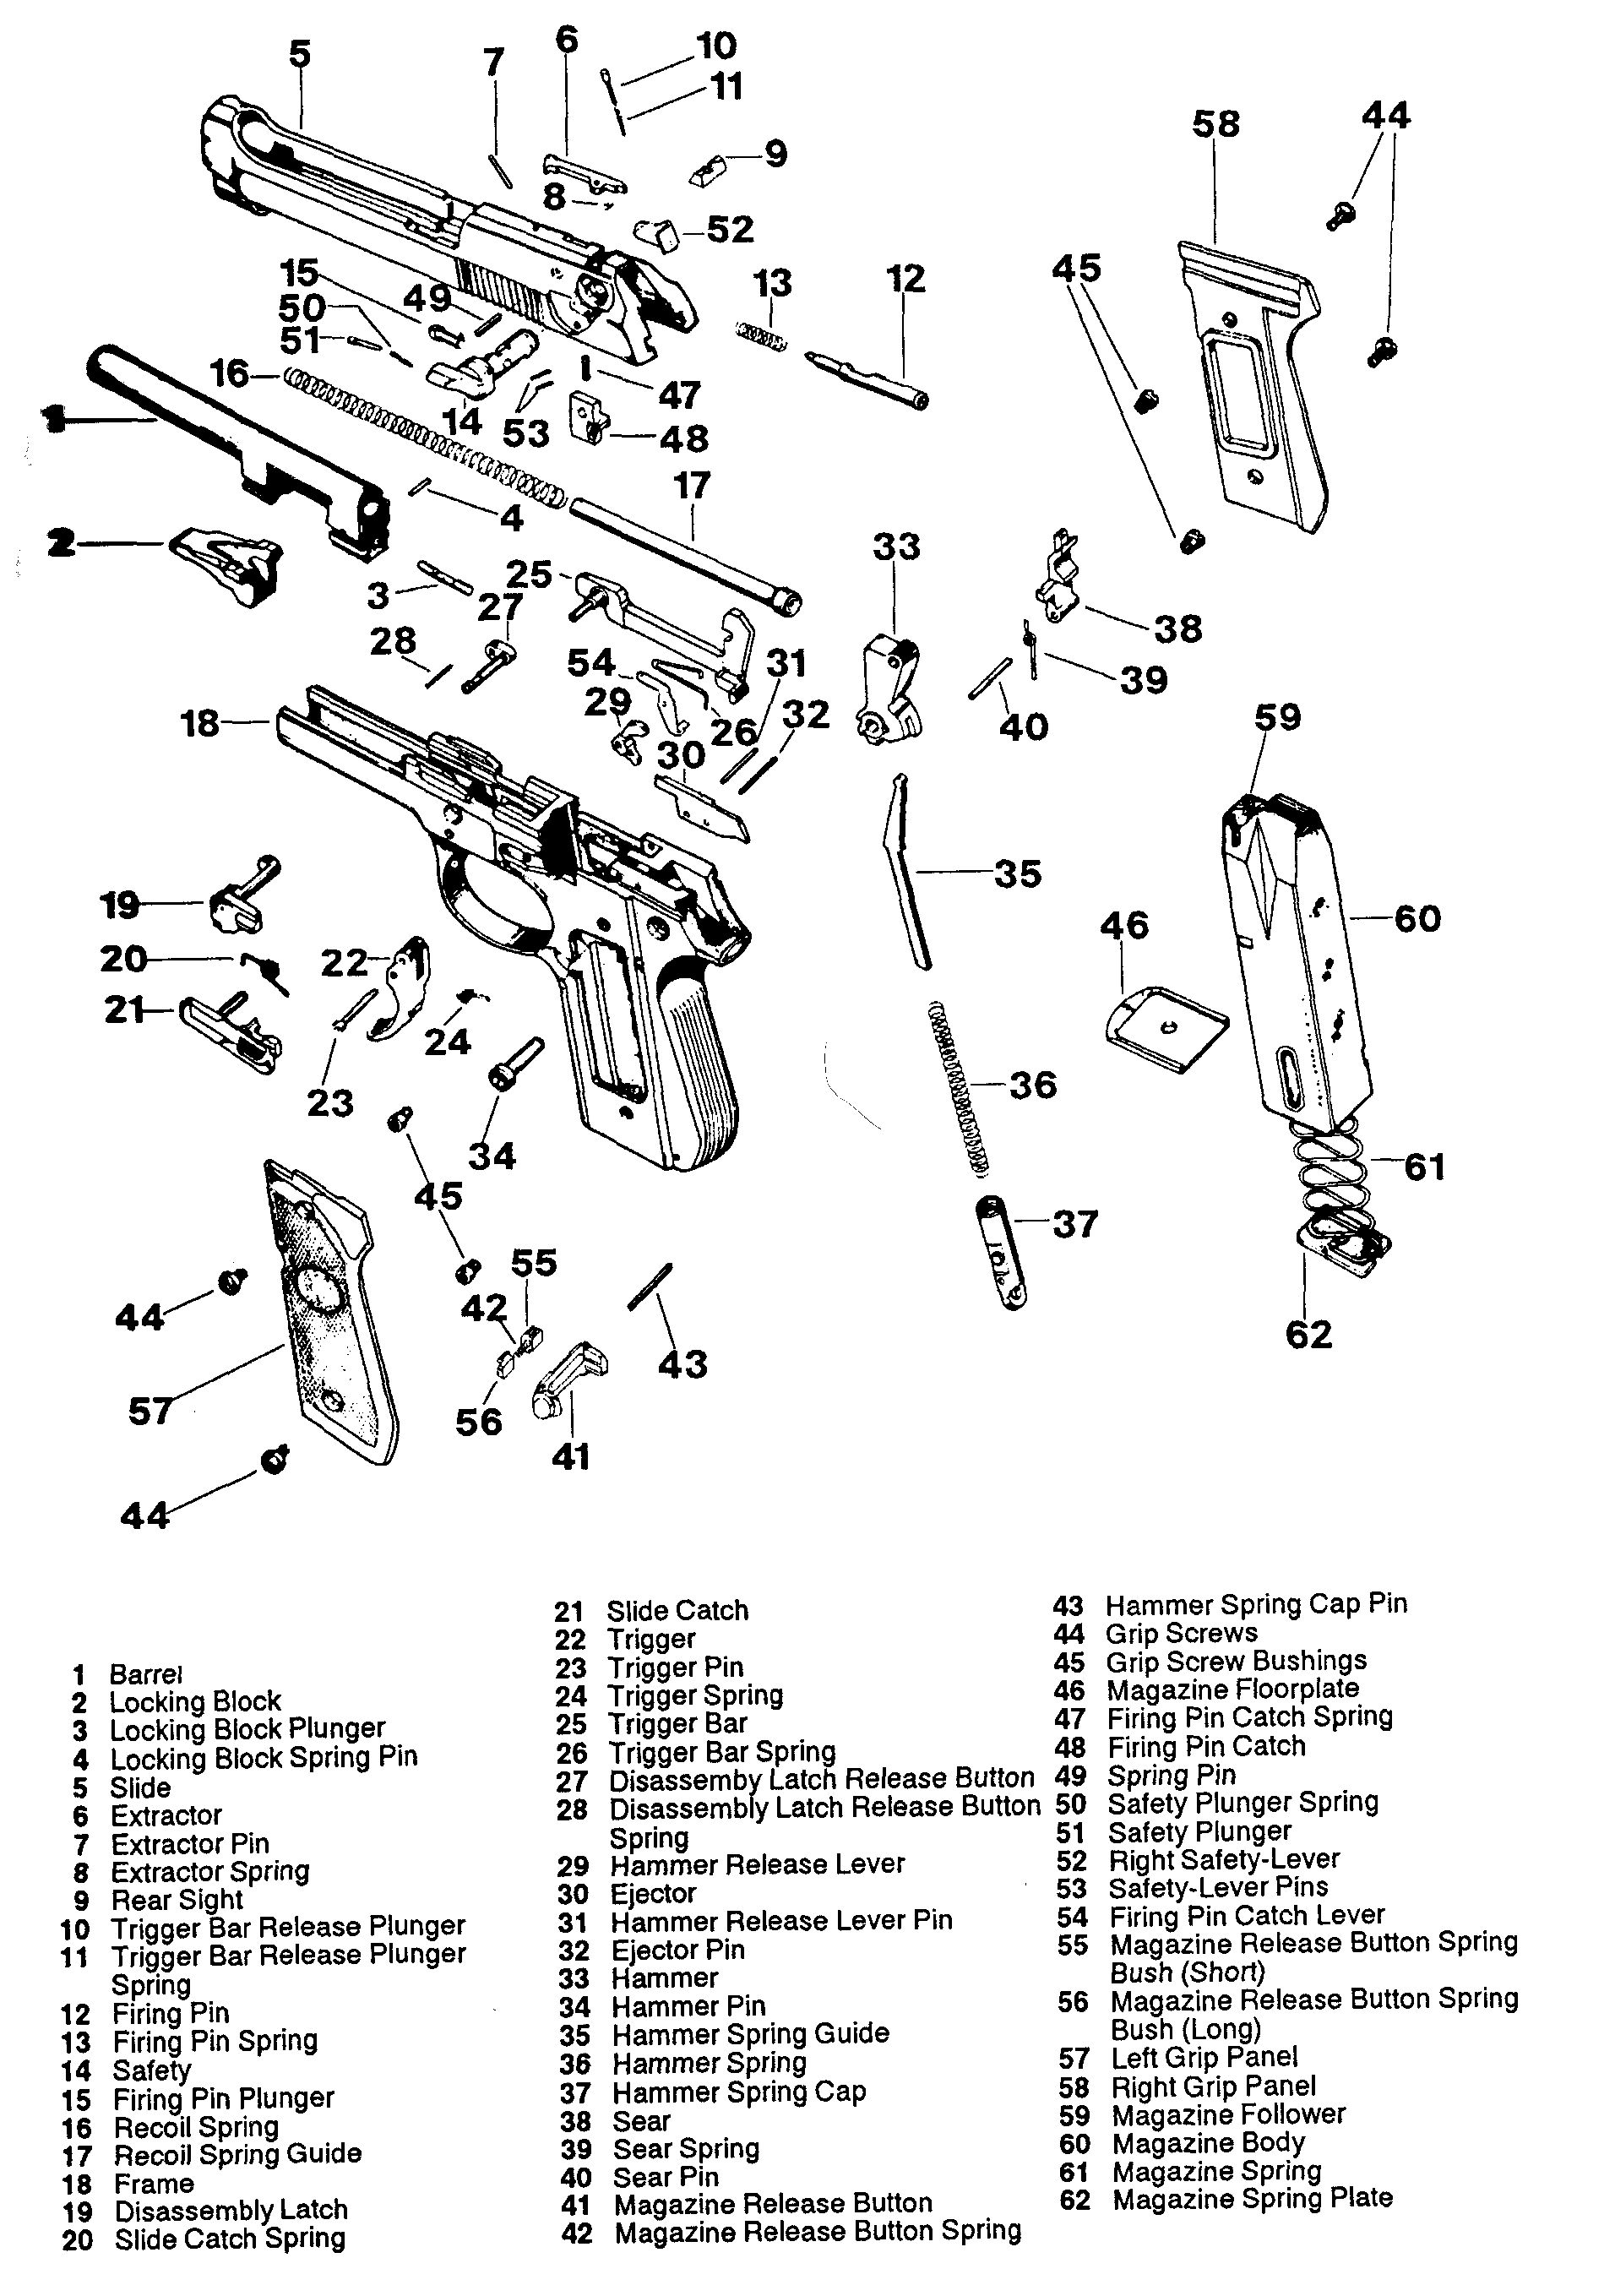 Beretta 92FS exploded view | Firearms | Guns, Beretta 92